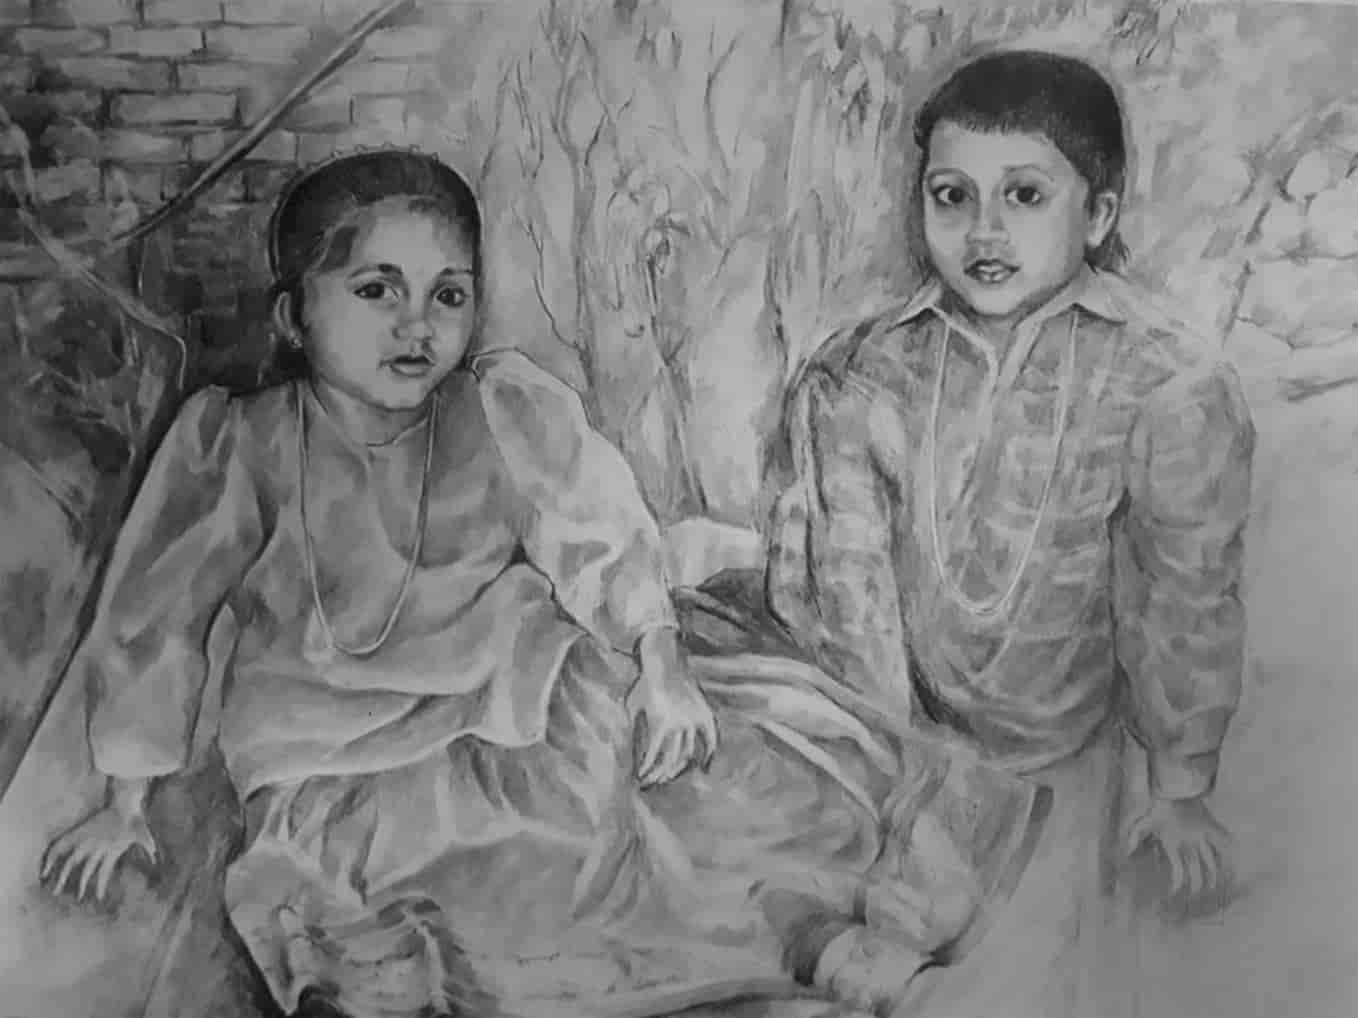 Saamvi art and design planet btm layout 1st stage drawing classes in bangalore justdial